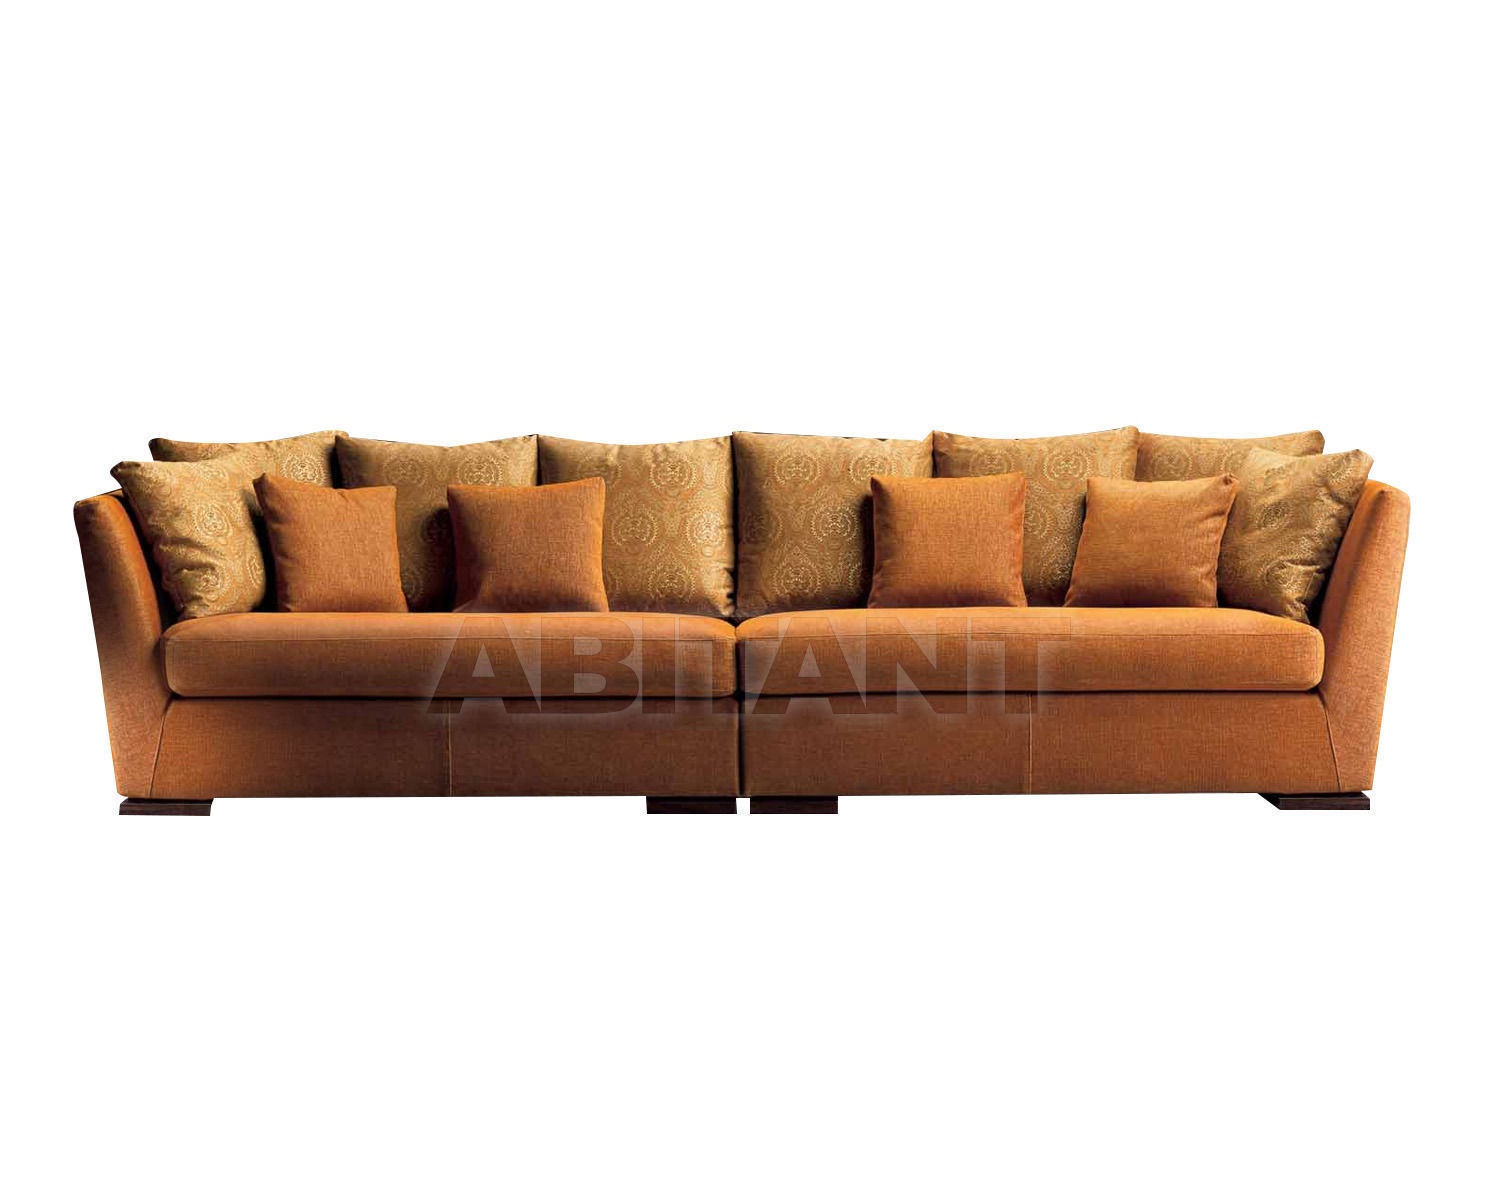 Купить Диван Formerin Contemporary Modern GARDNER 2 x Divano terminale/Sofa with 1 arm